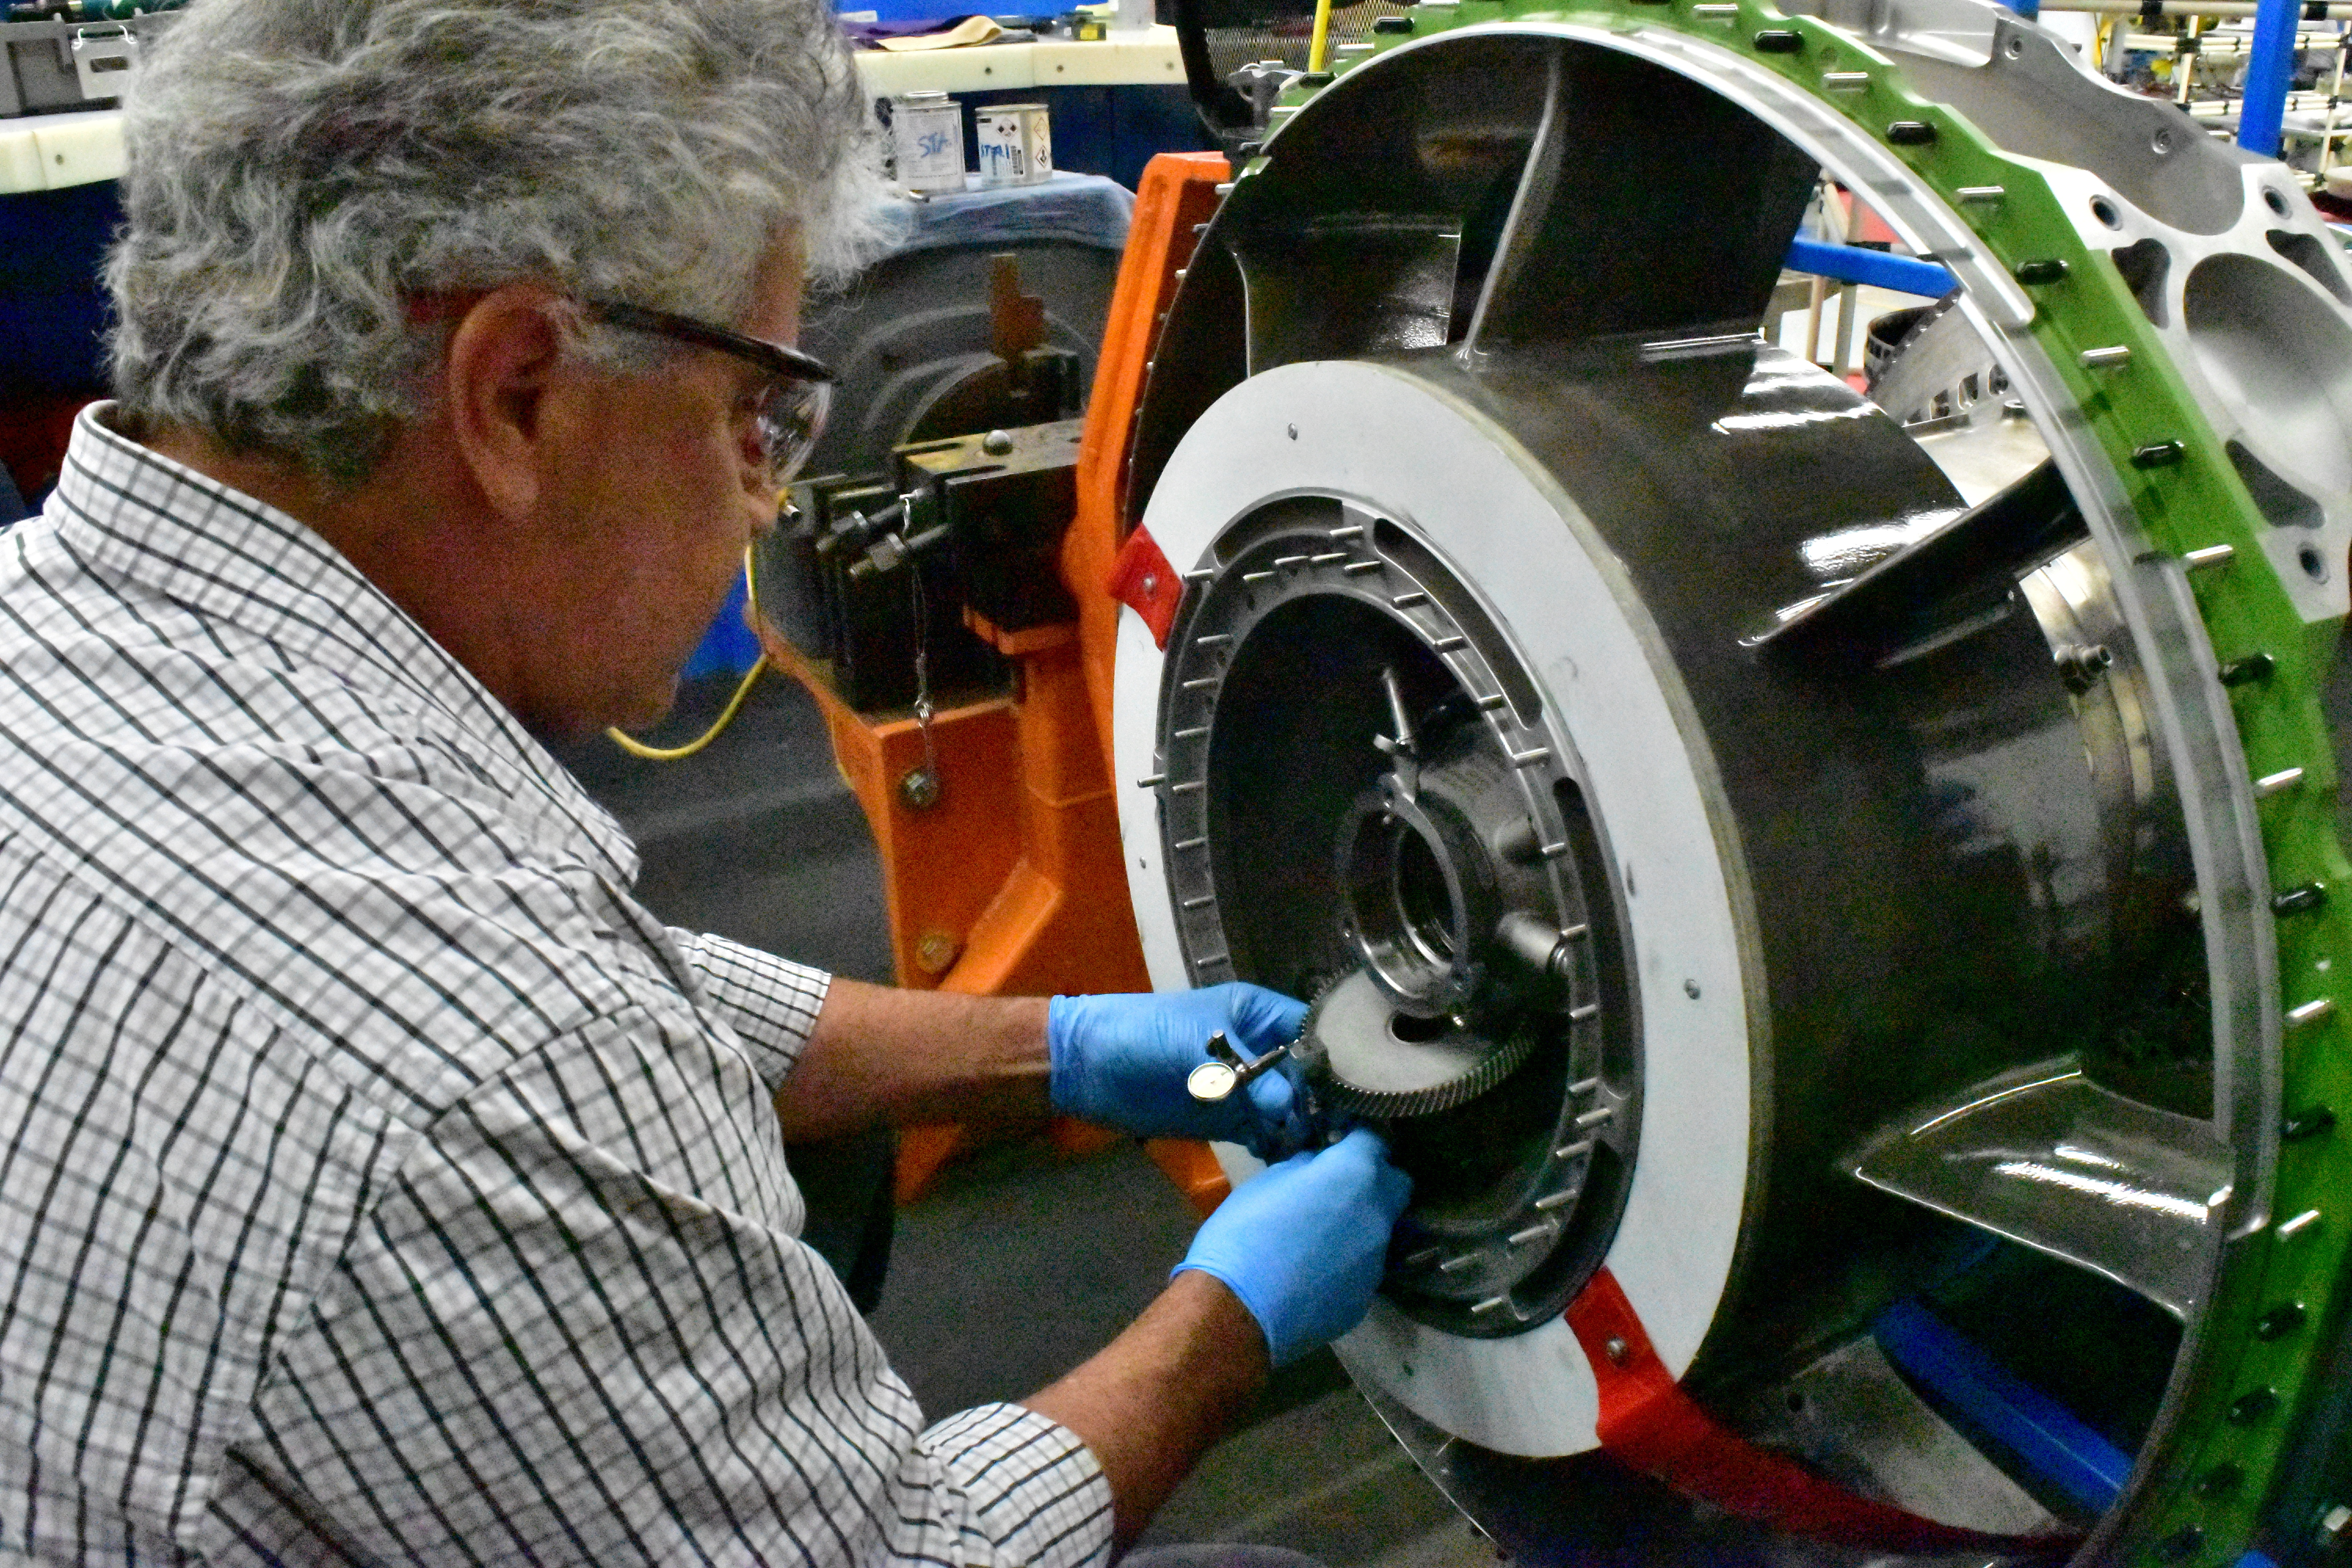 A worker is seen building an aircraft engine at Honeywell Aerospace in Phoenix, Arizona, U.S. on September 6, 2016. Picture taken on September 6, 2016.   REUTERS/Alwyn Scott/File Photo